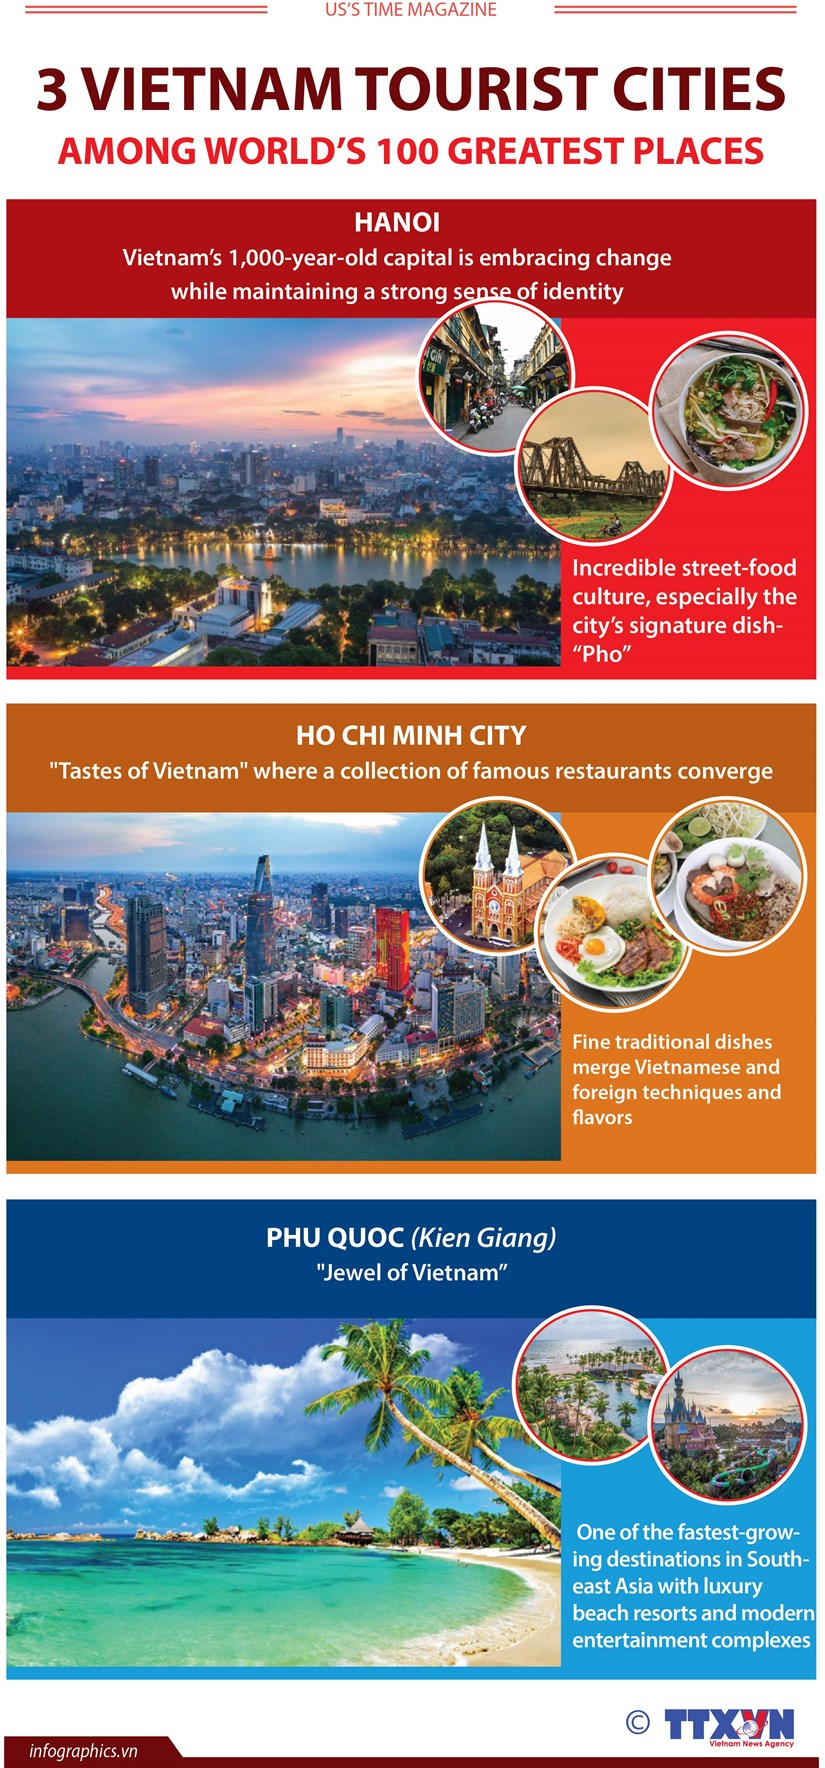 Three Vietnam tourist cities among world's 100 greatest places hinh anh 1